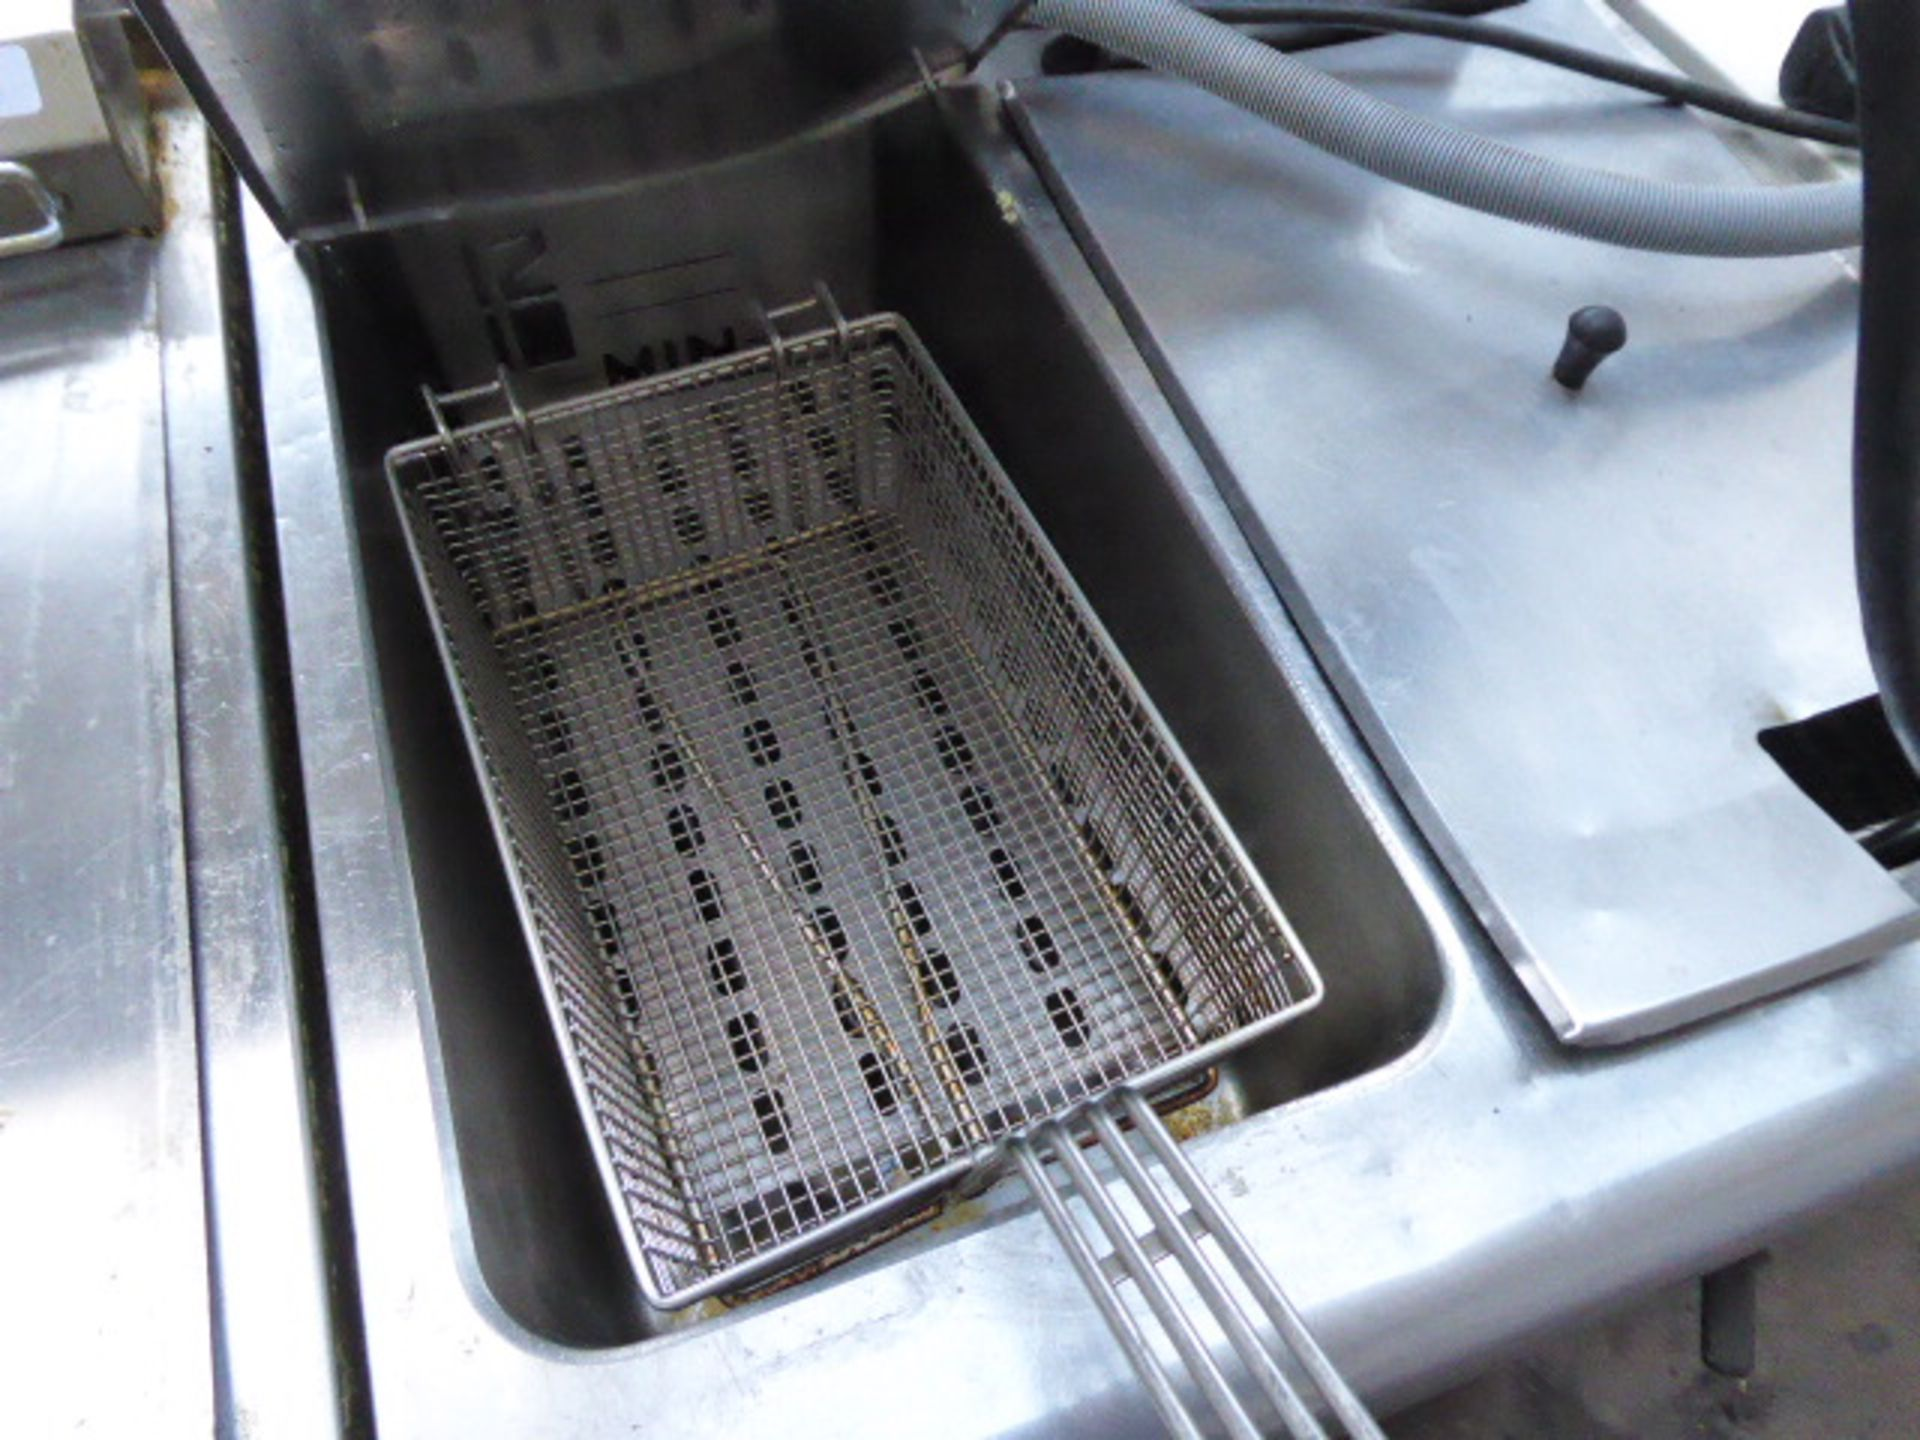 60cm electric Lincat 2-well fryer with baskets on stand - Image 2 of 2